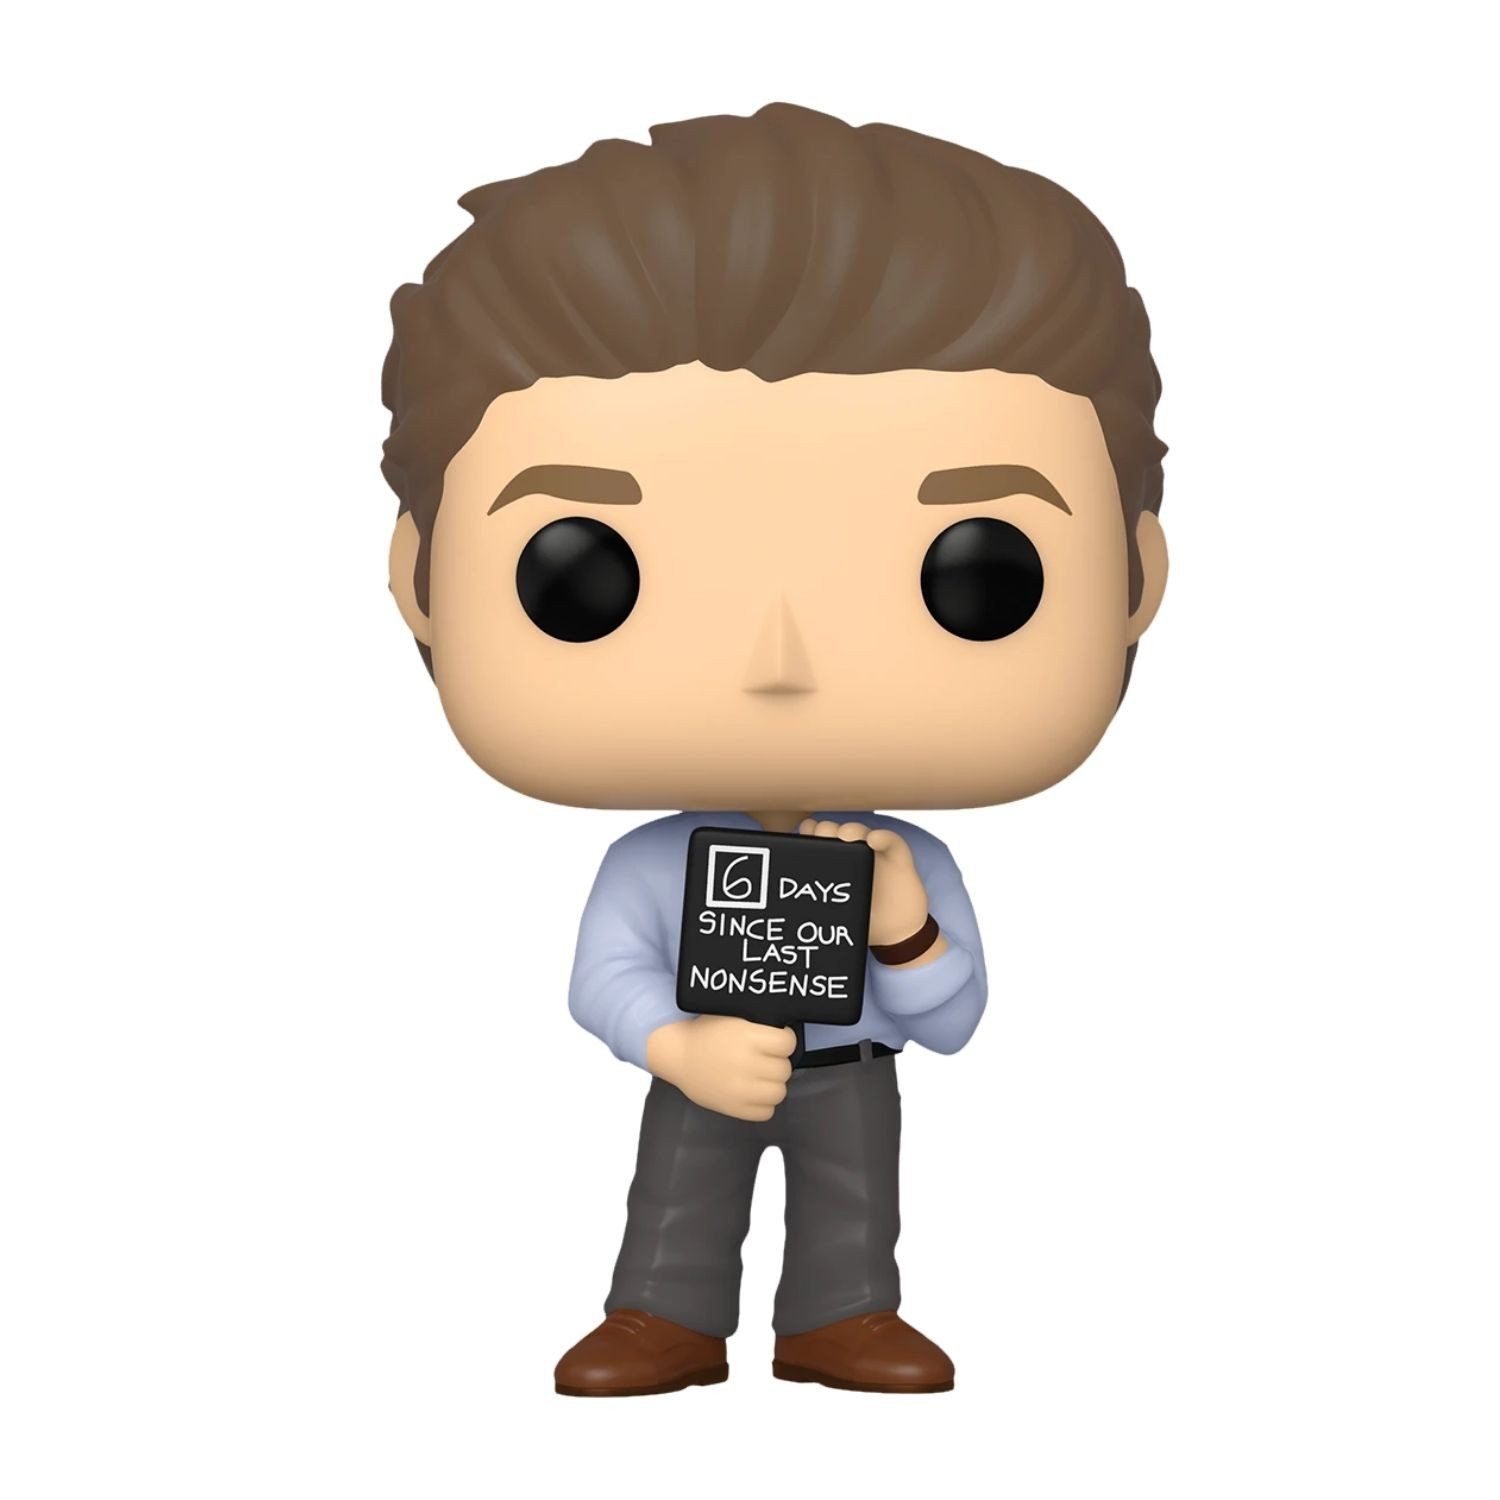 Funko Pop The Office Jim With Nonsense Sign #1046  - Game Land Brinquedos